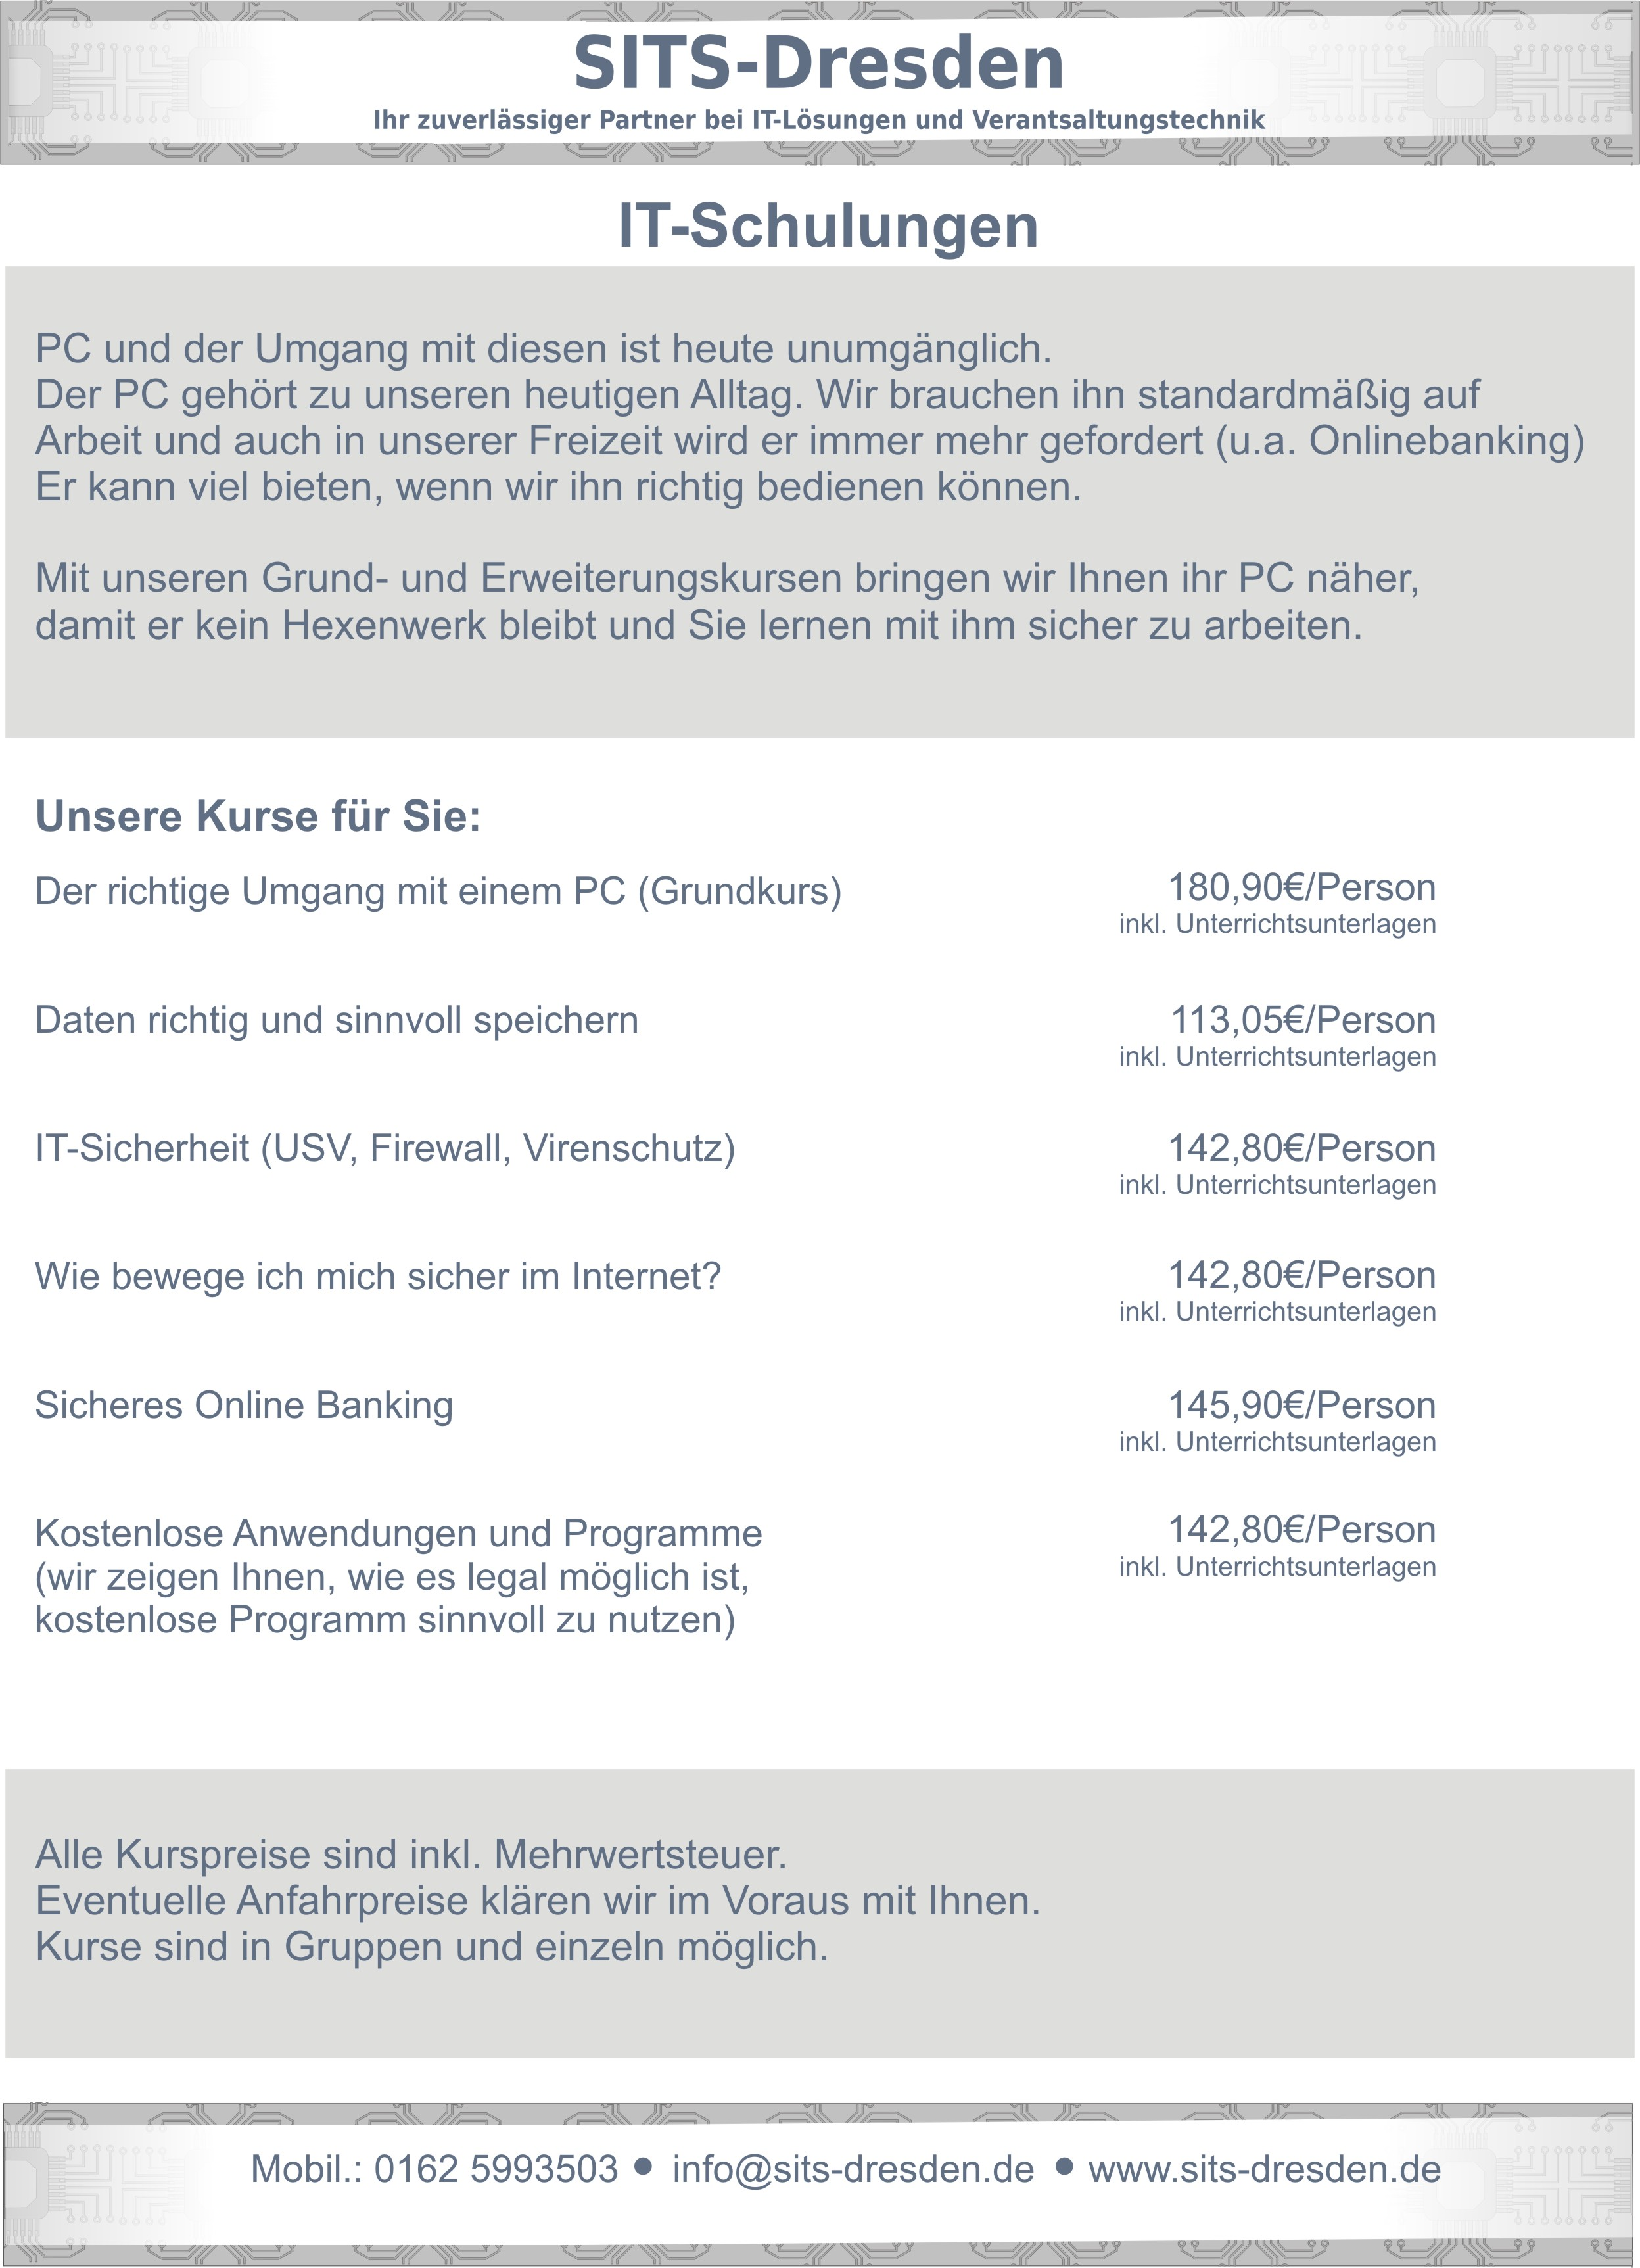 Unsere IT Schulungen, Kurse, Workshops